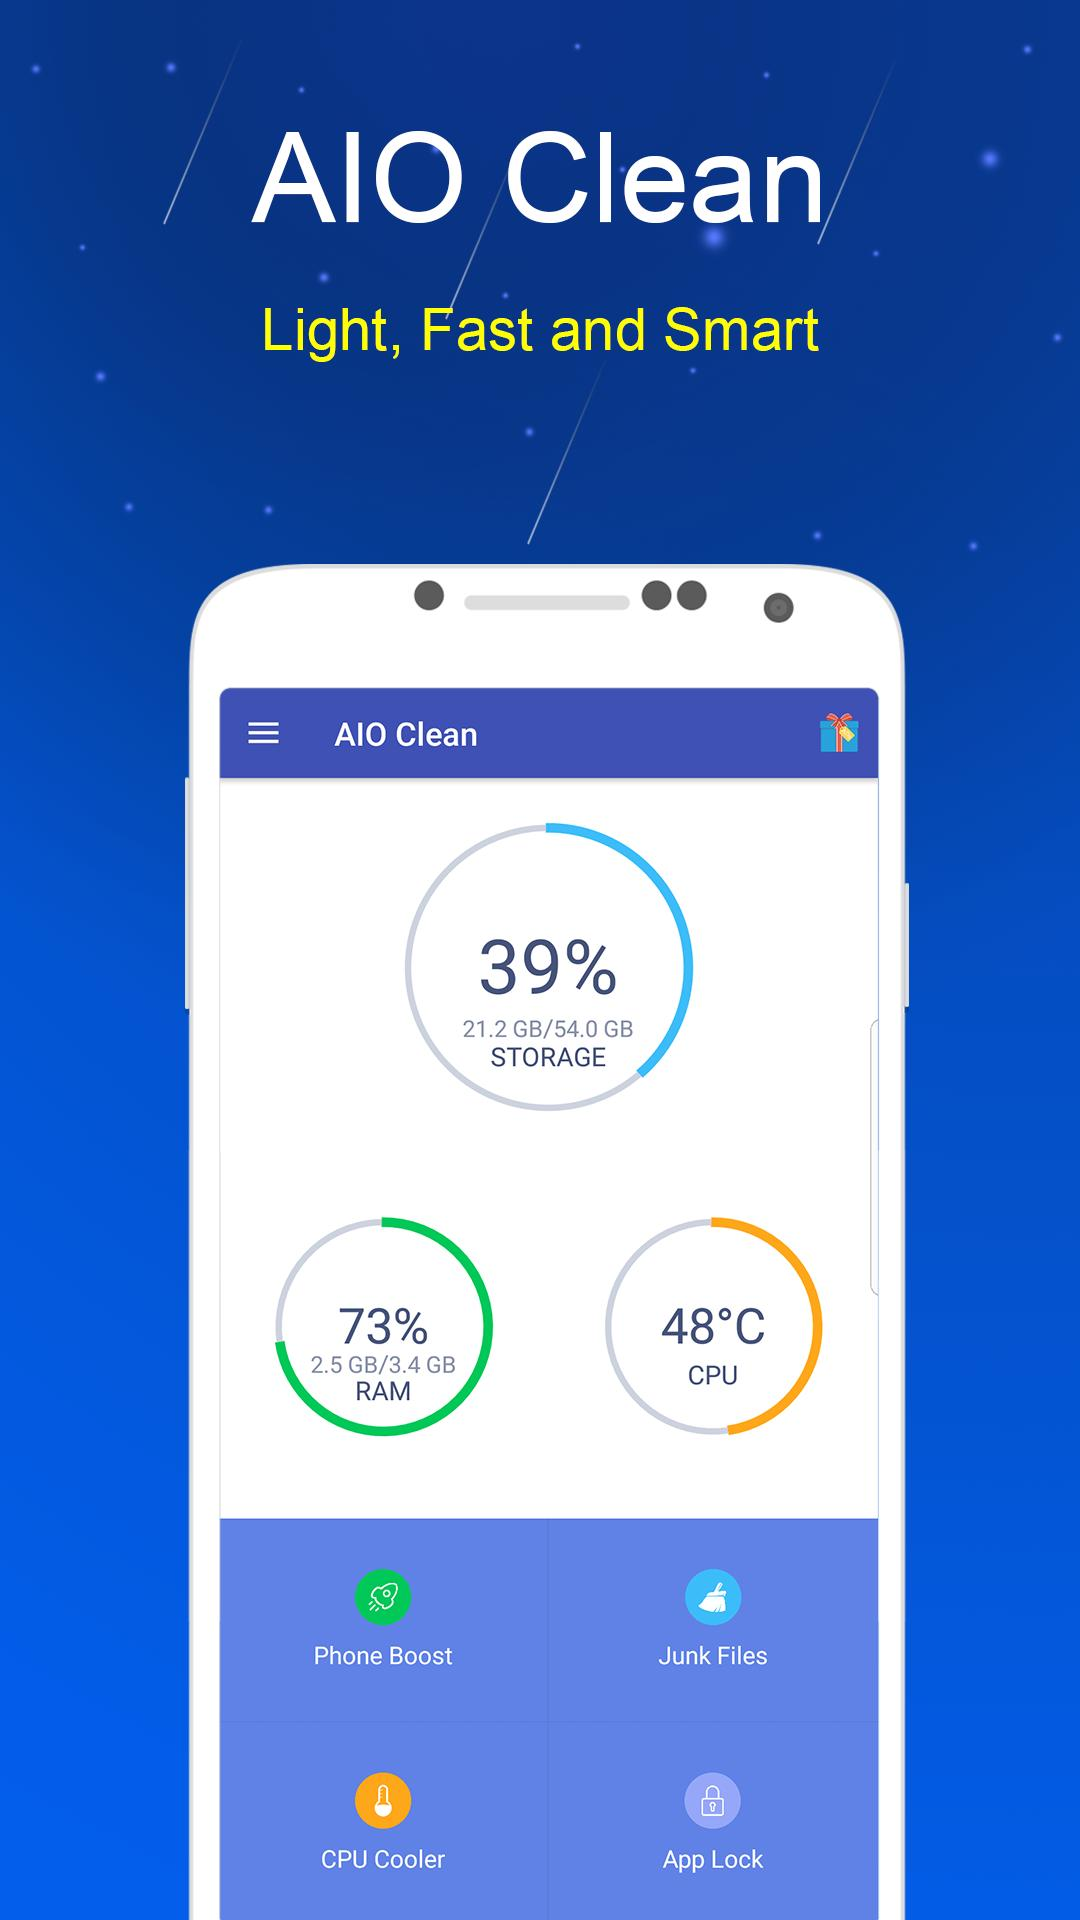 All-In-One Super Cleaner and Booster 5X for Android - APK